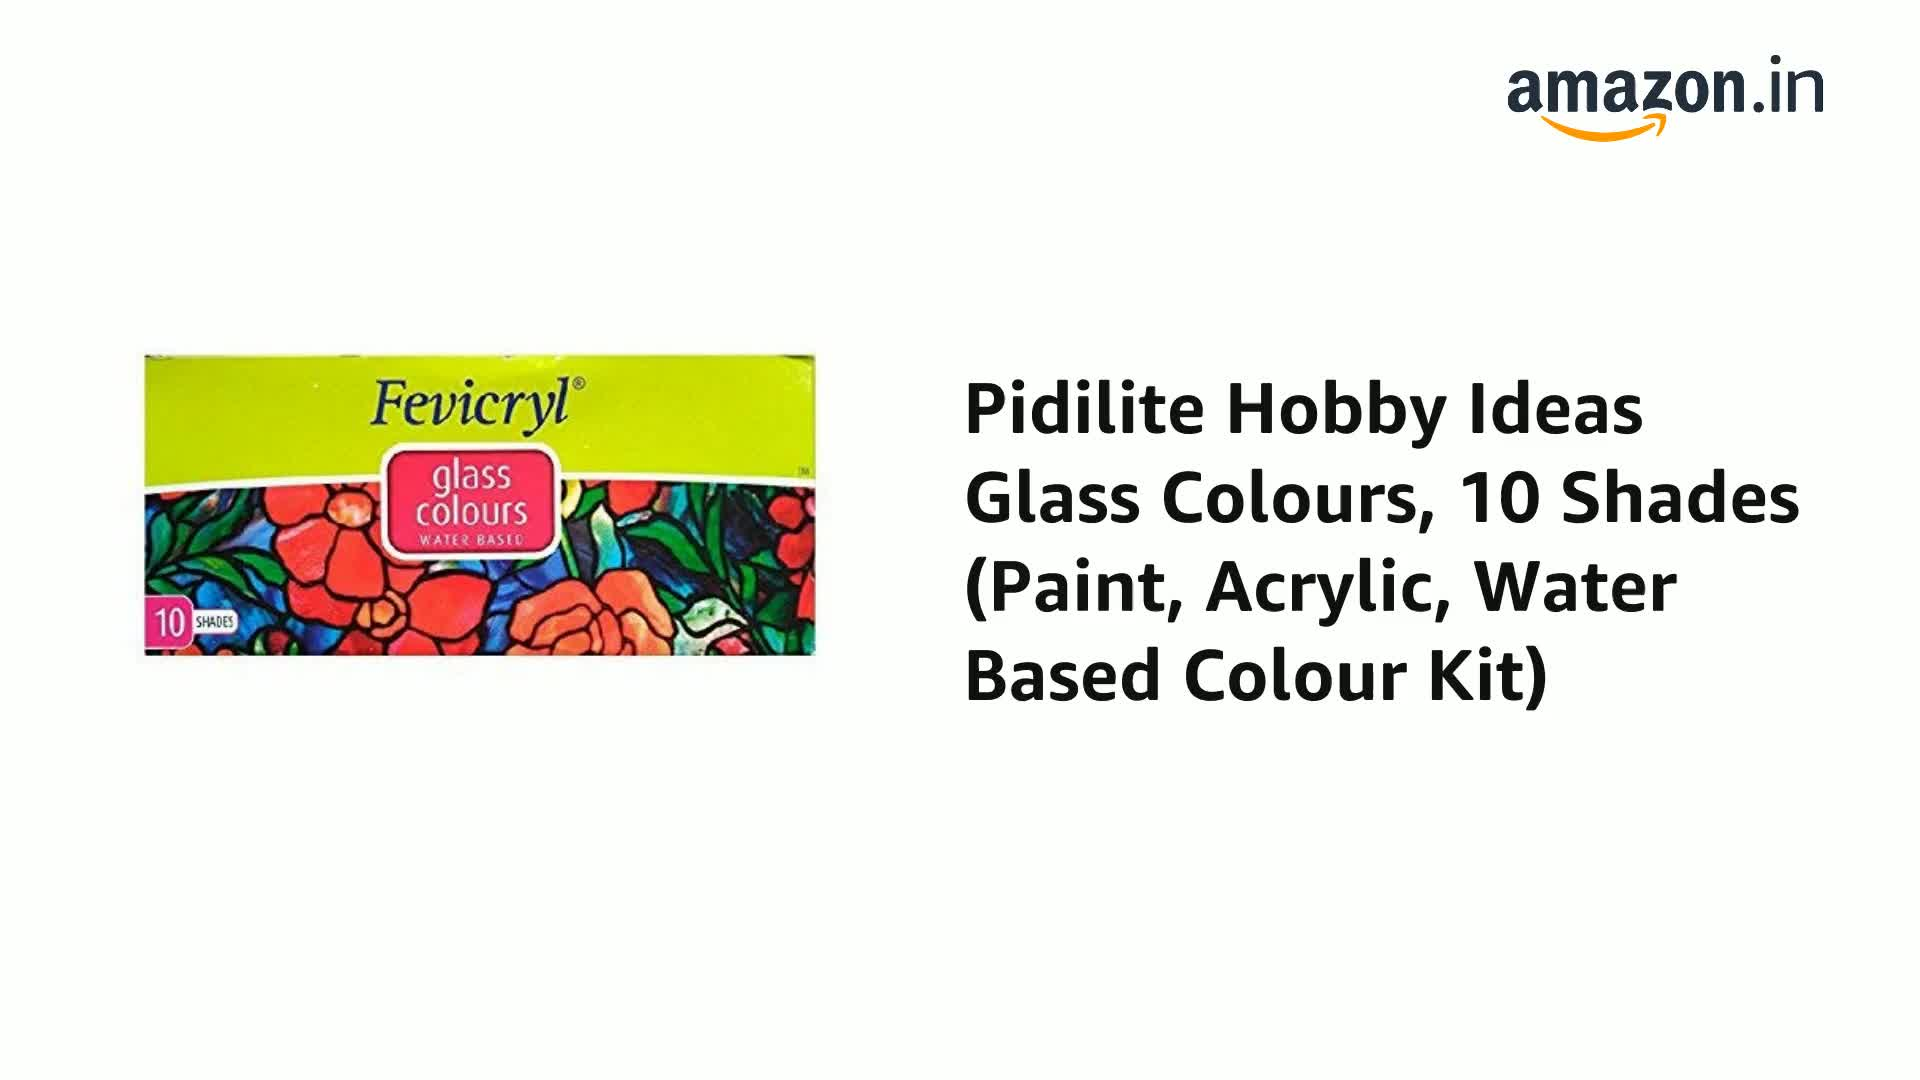 Pidilite Hobby Ideas Glass Colours 10 Shades Paint Acrylic Water Based Colour Kit Amazon In Home Kitchen